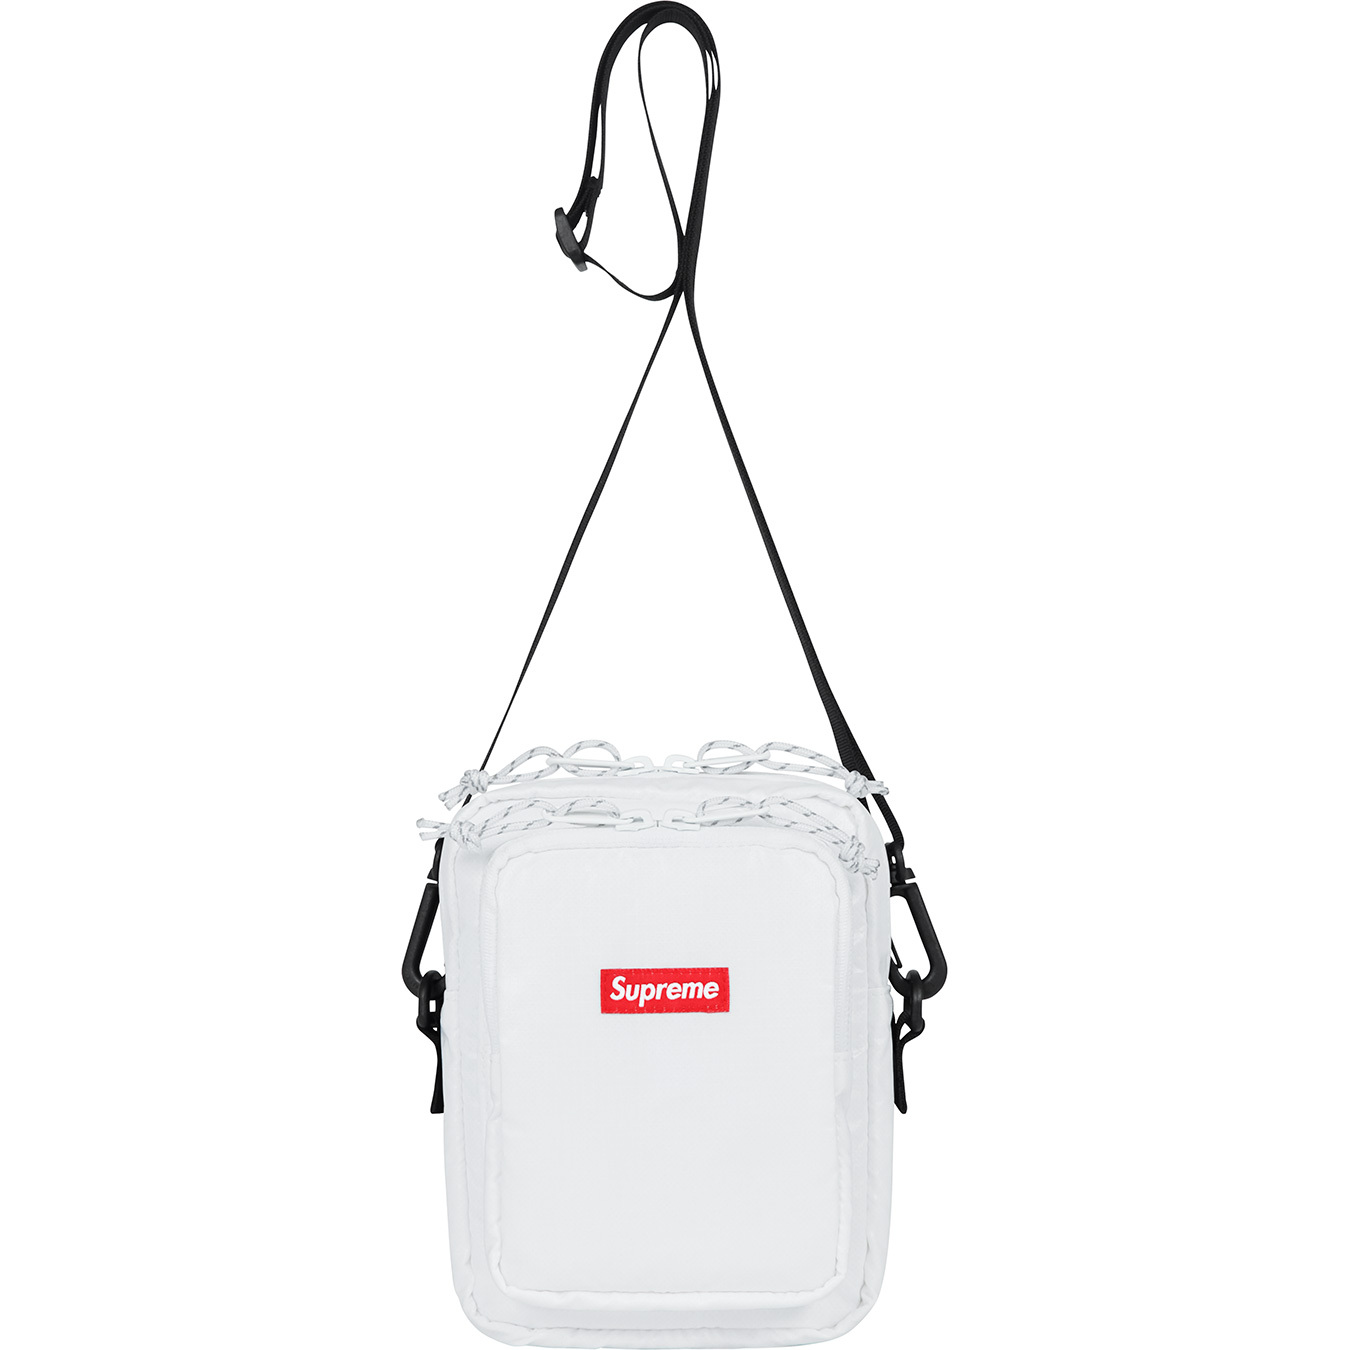 supreme-2017aw-fall-winter-shoulder-bag